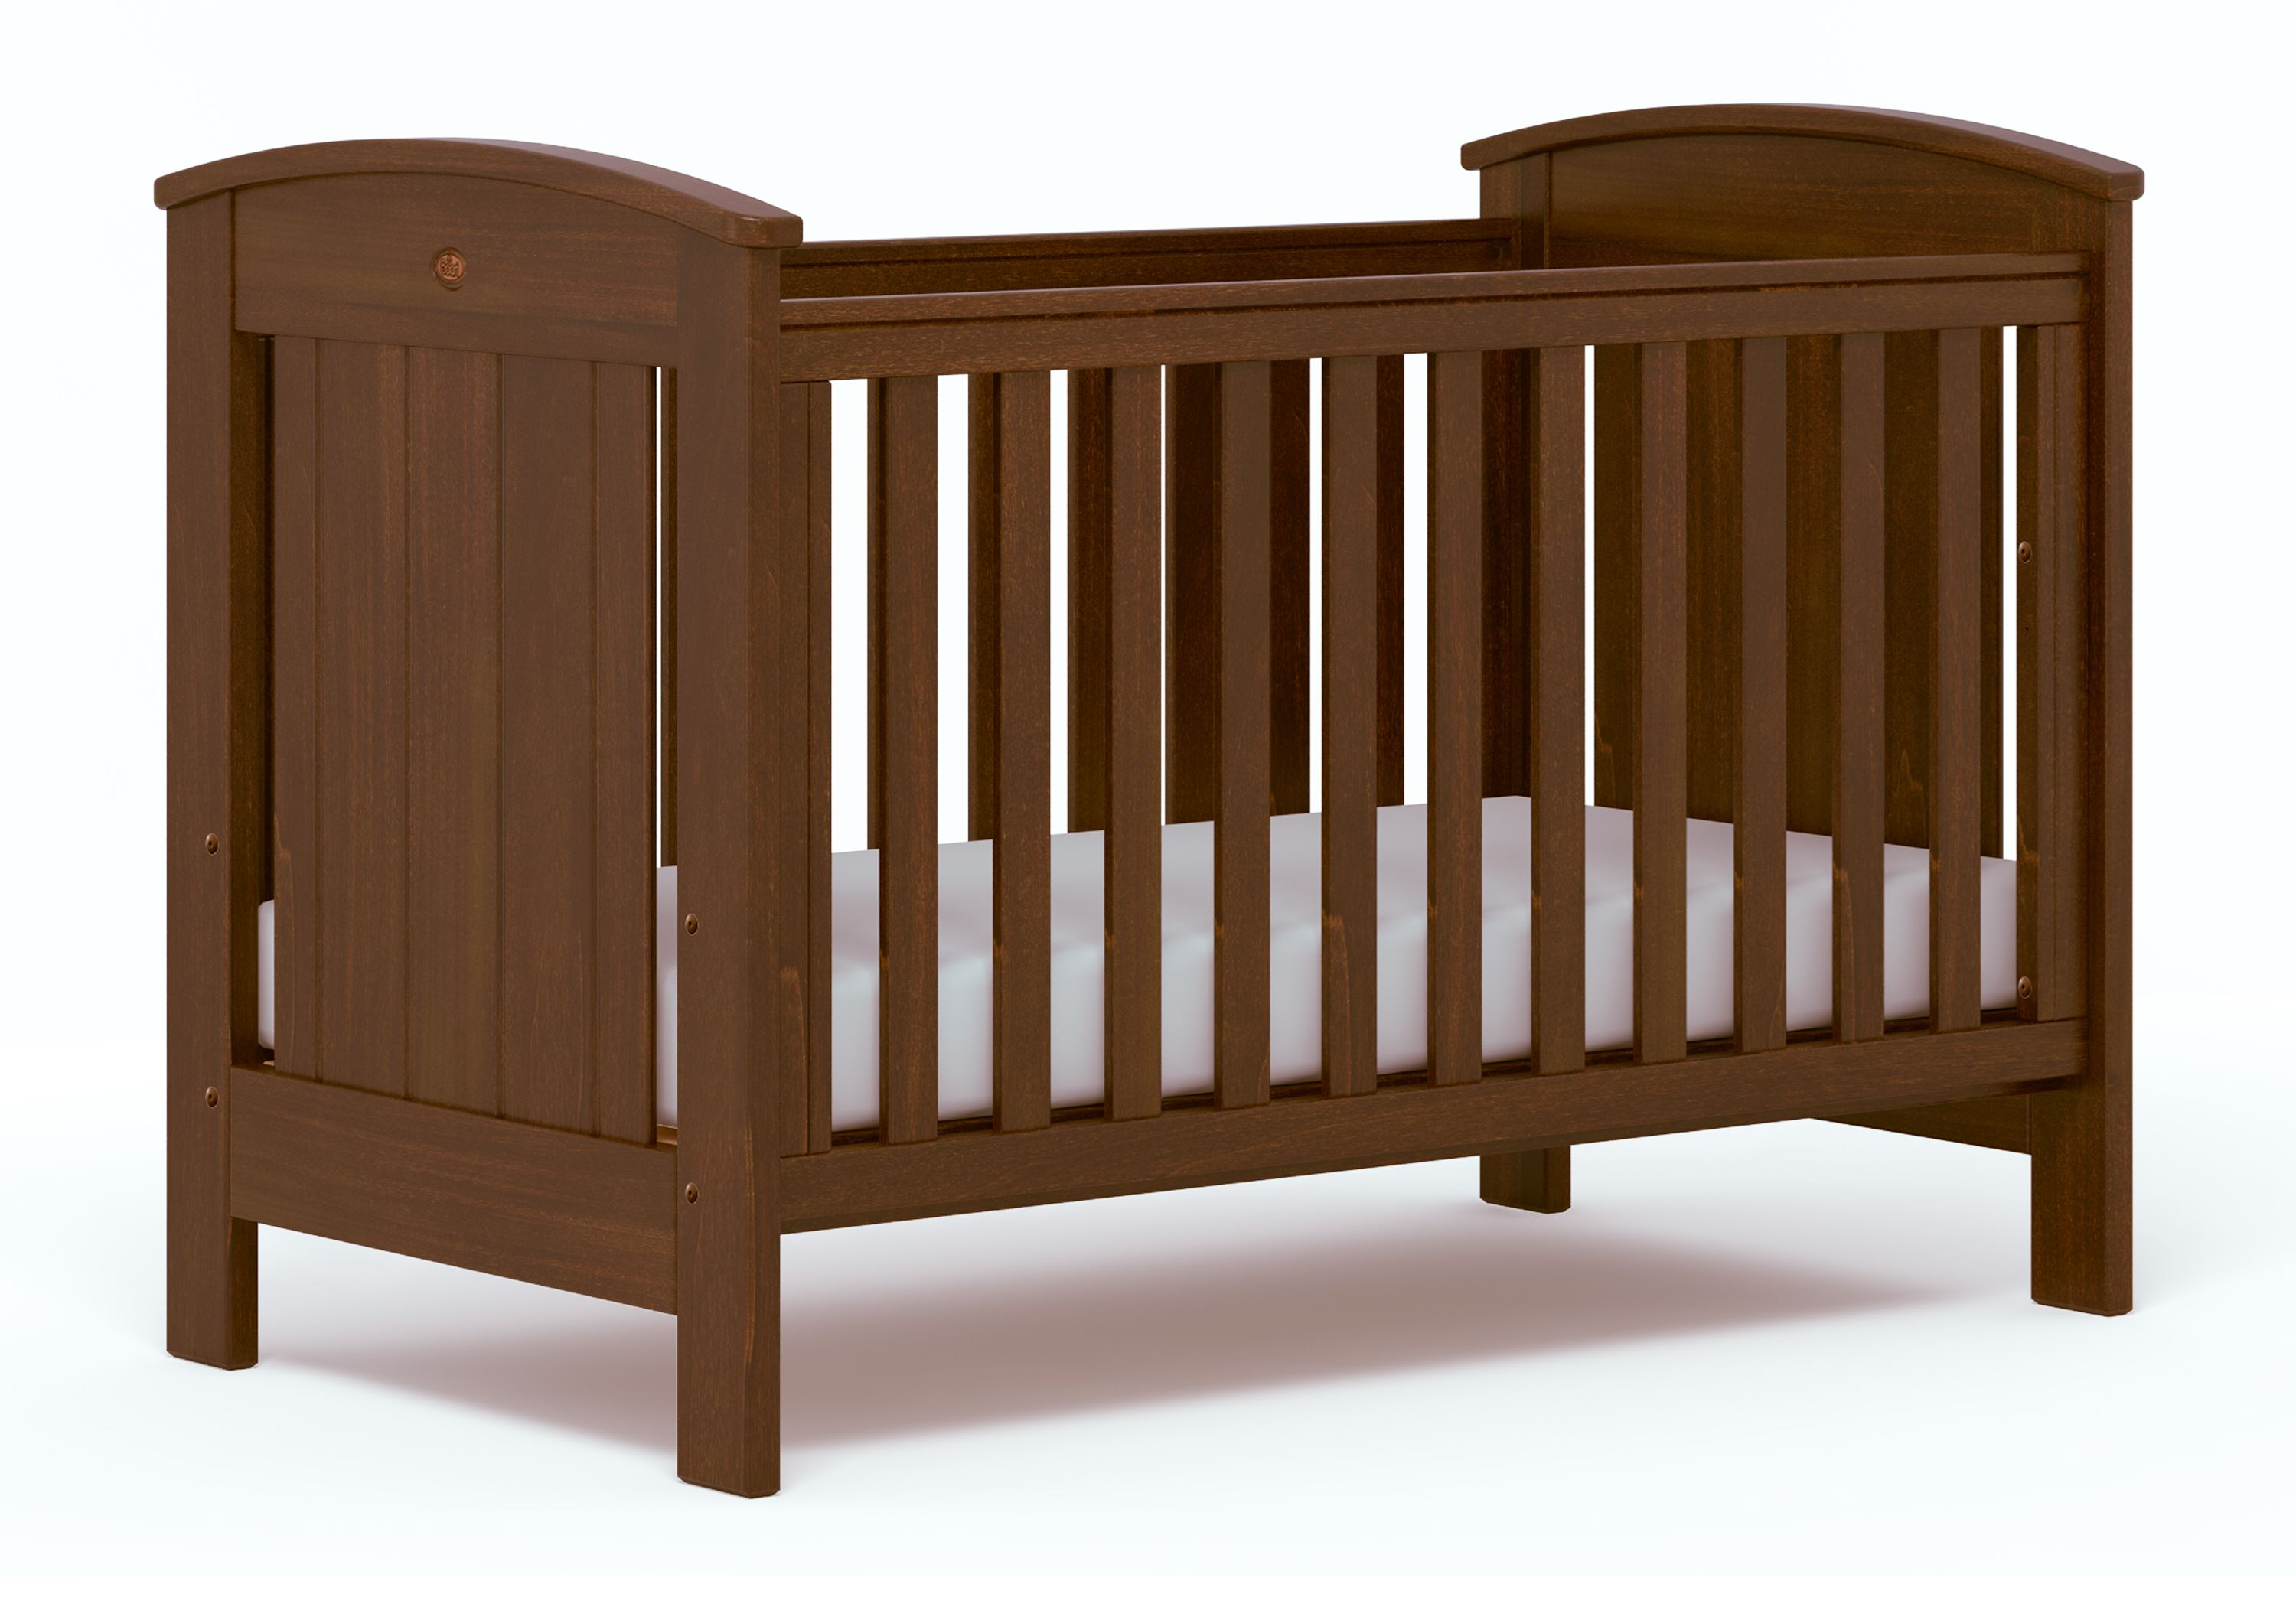 Casa Cot bed (Dropside) - English Oak